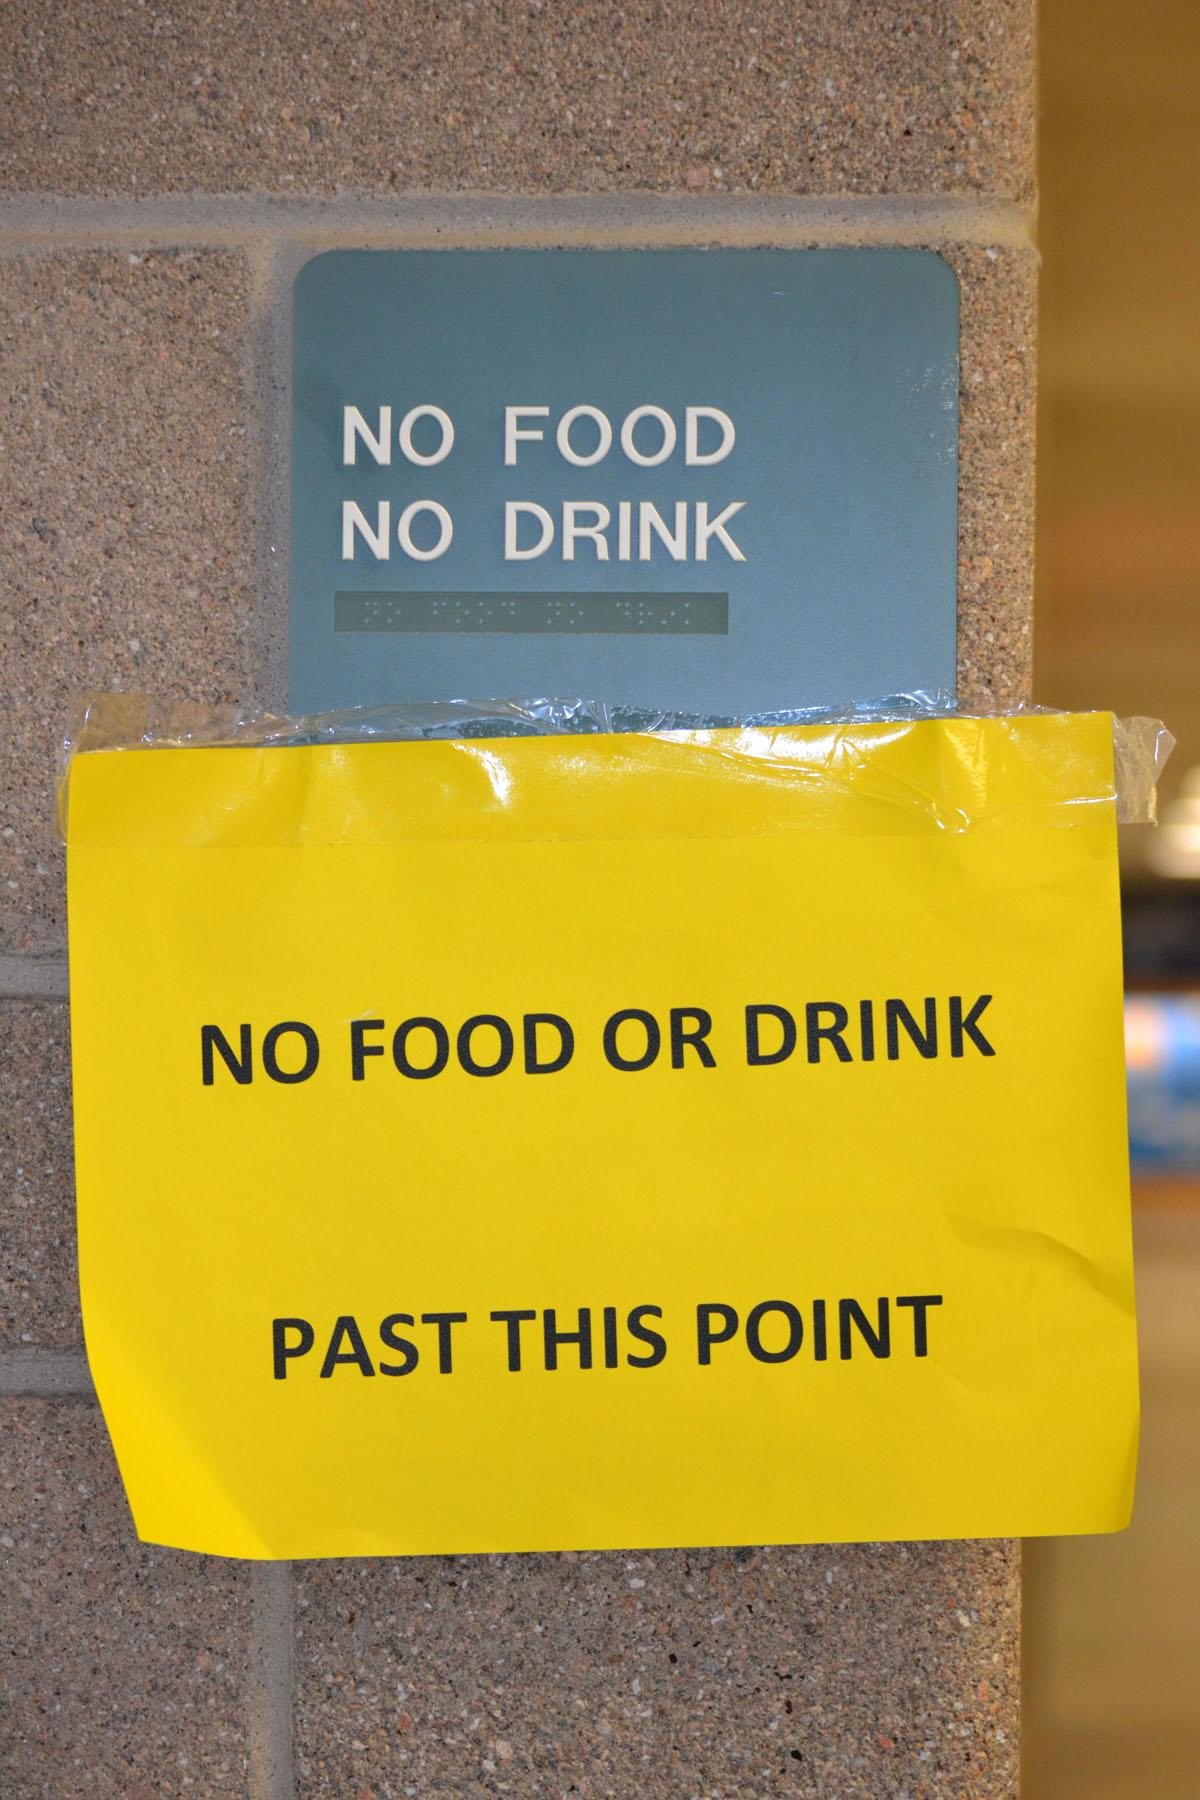 Their is an added emphasis this school year on keeping the building in upstanding physical condition. That said, staff is cracking down on rule prohibiting food in the hallways and classrooms.